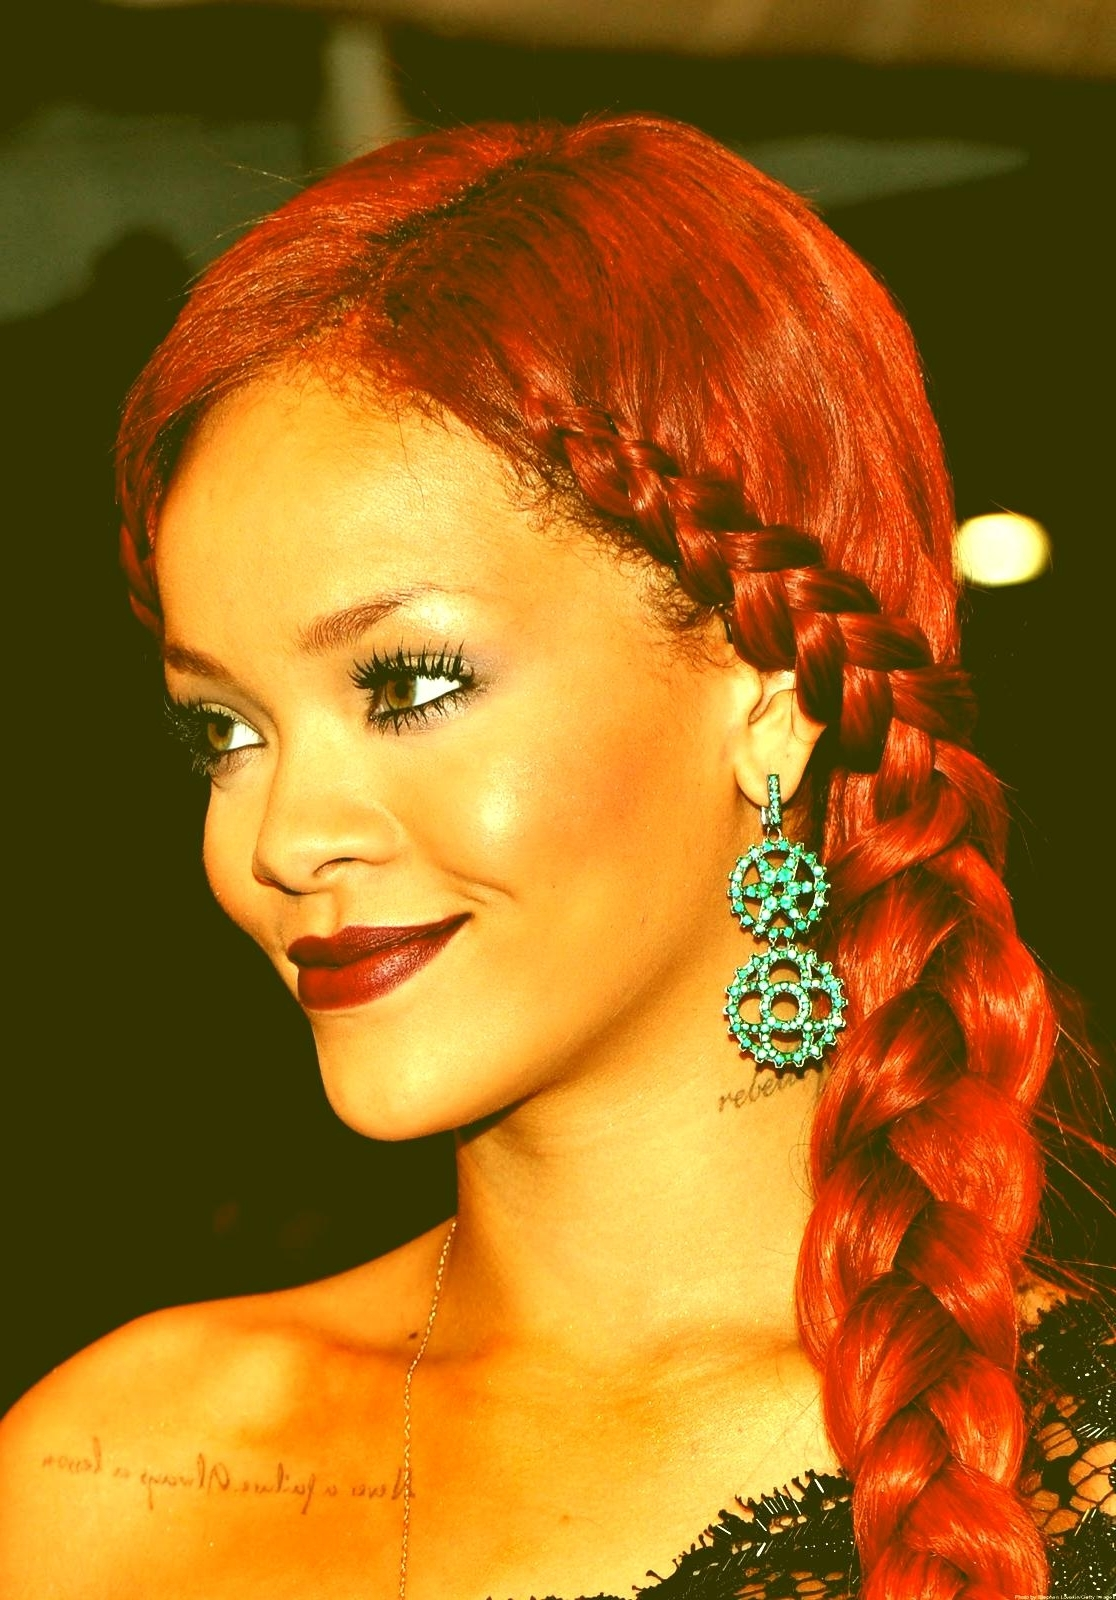 Rihanna Braids Hairstyle Cute Braided Hairstyles For 2012 Ideas For Current Rihanna Braided Hairstyles (View 14 of 15)